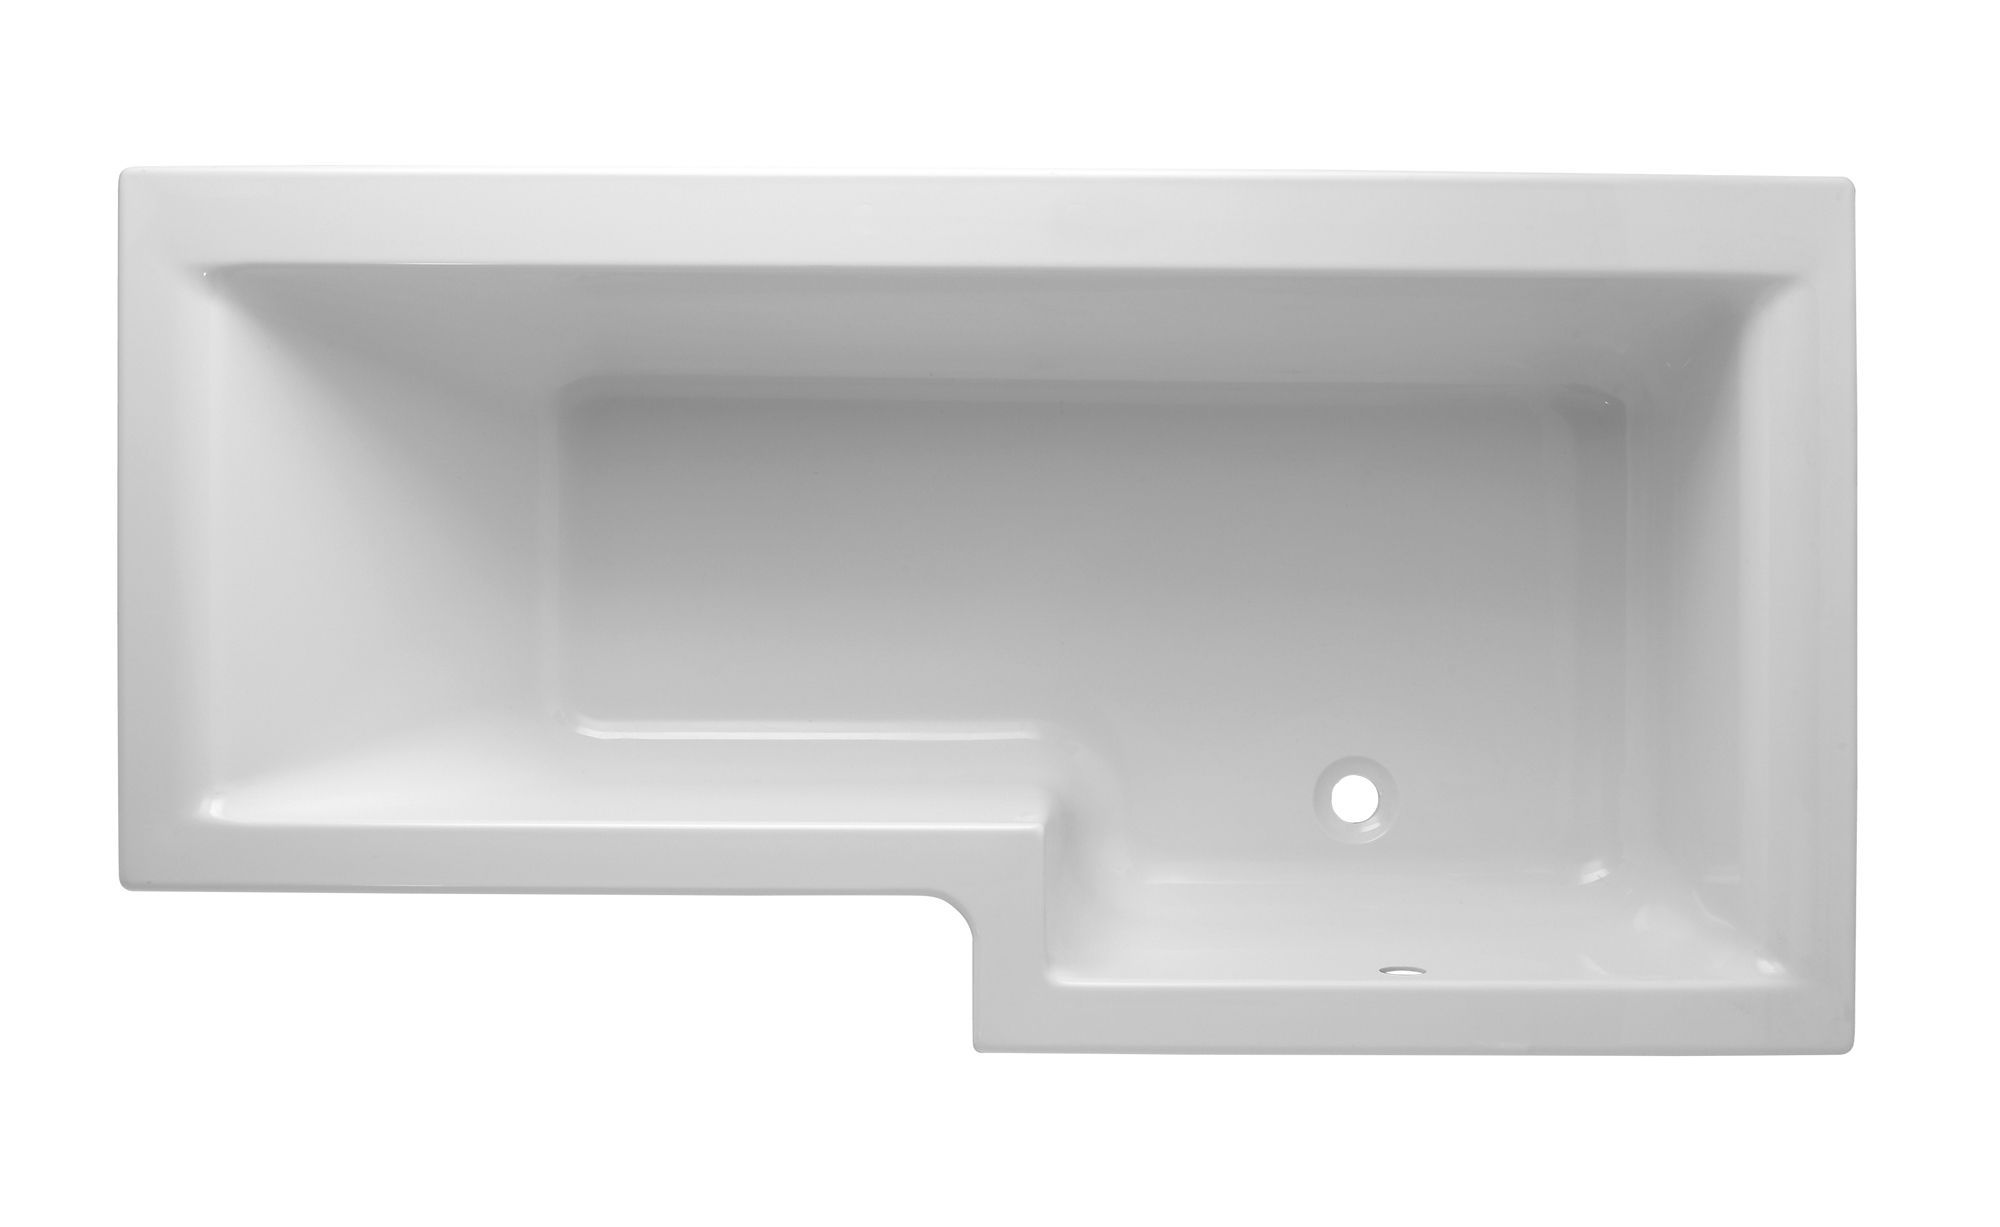 cooke lewis adelphi rh acrylic l shaped shower bath l 1675mm w cooke lewis adelphi rh acrylic l shaped shower bath l 1675mm w 850mm departments diy at b q